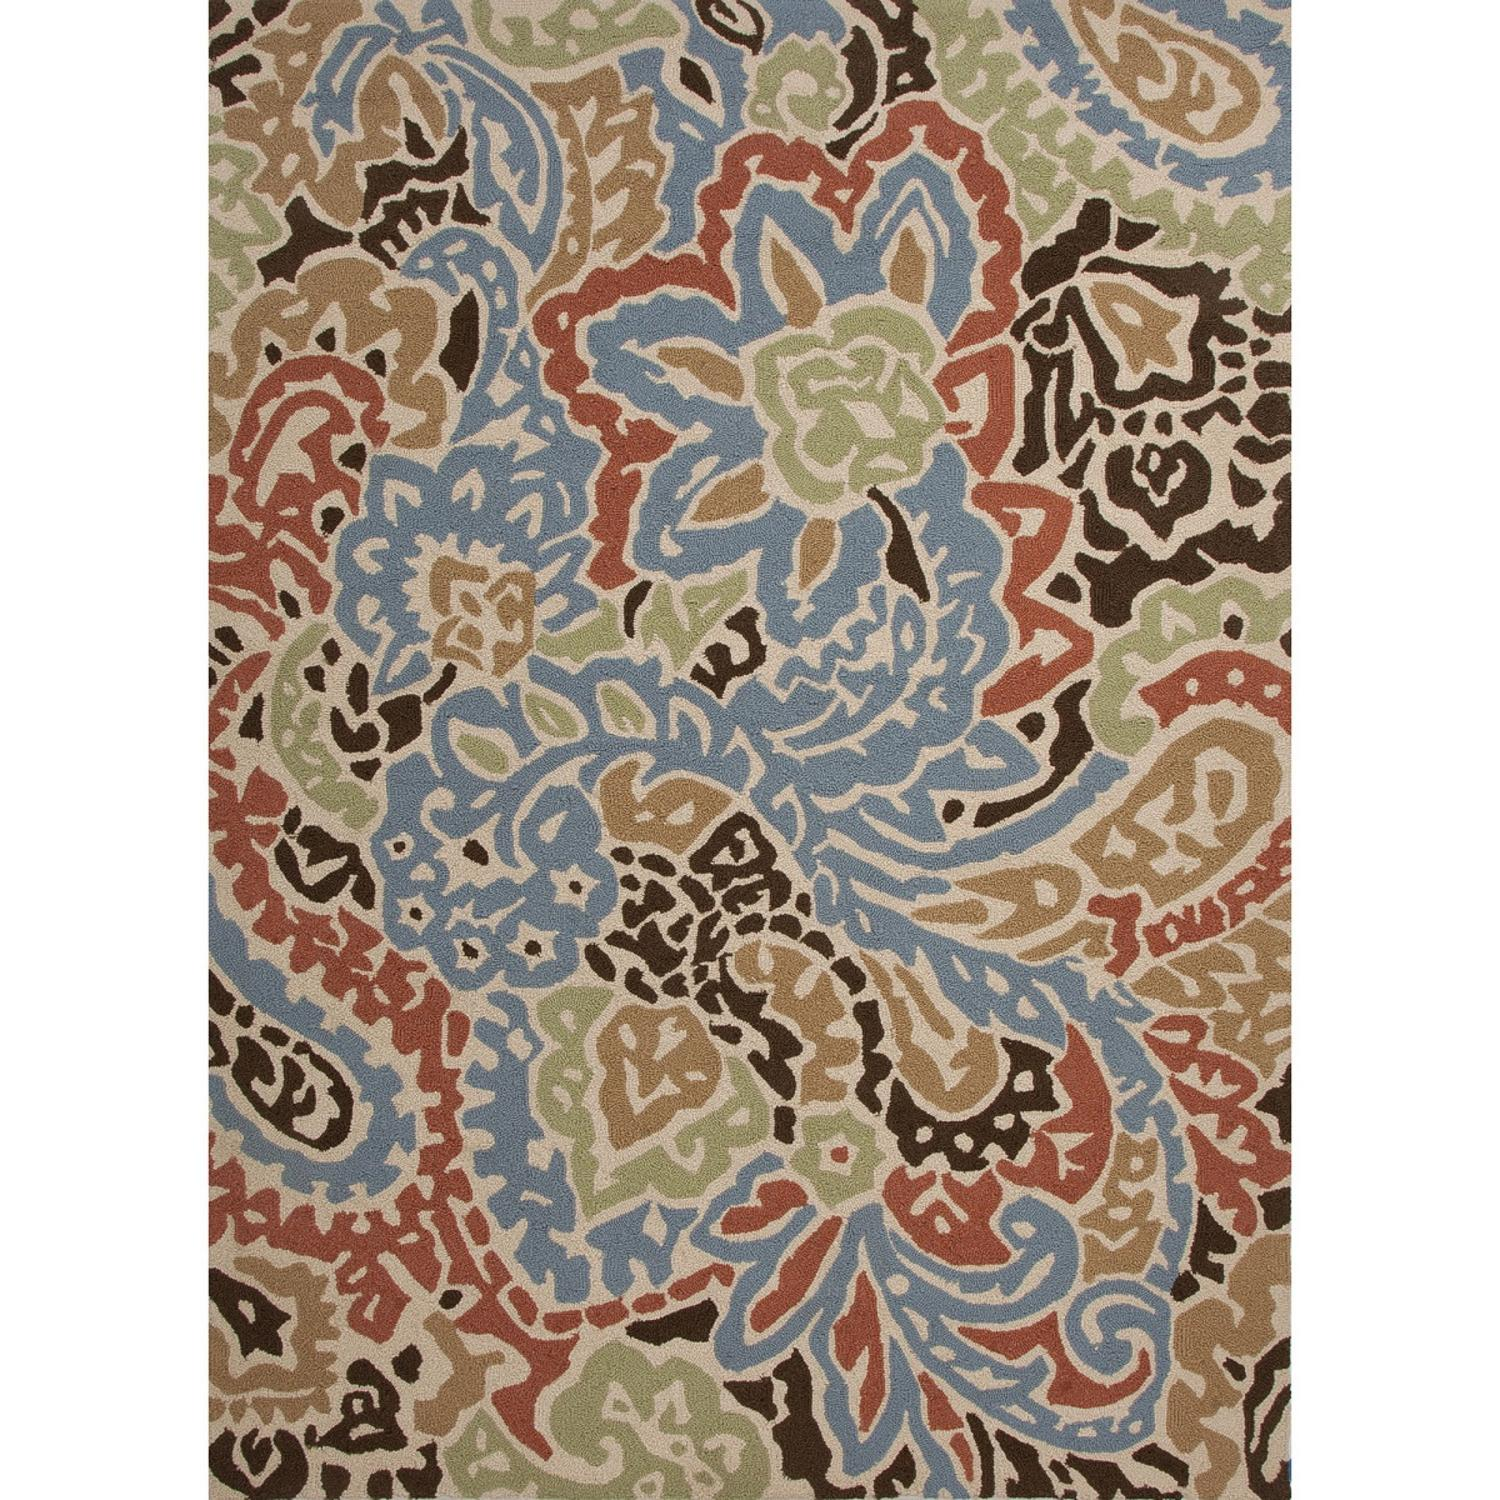 2' x 3' Multicolored Flores Design Outdoor Area Throw Rug